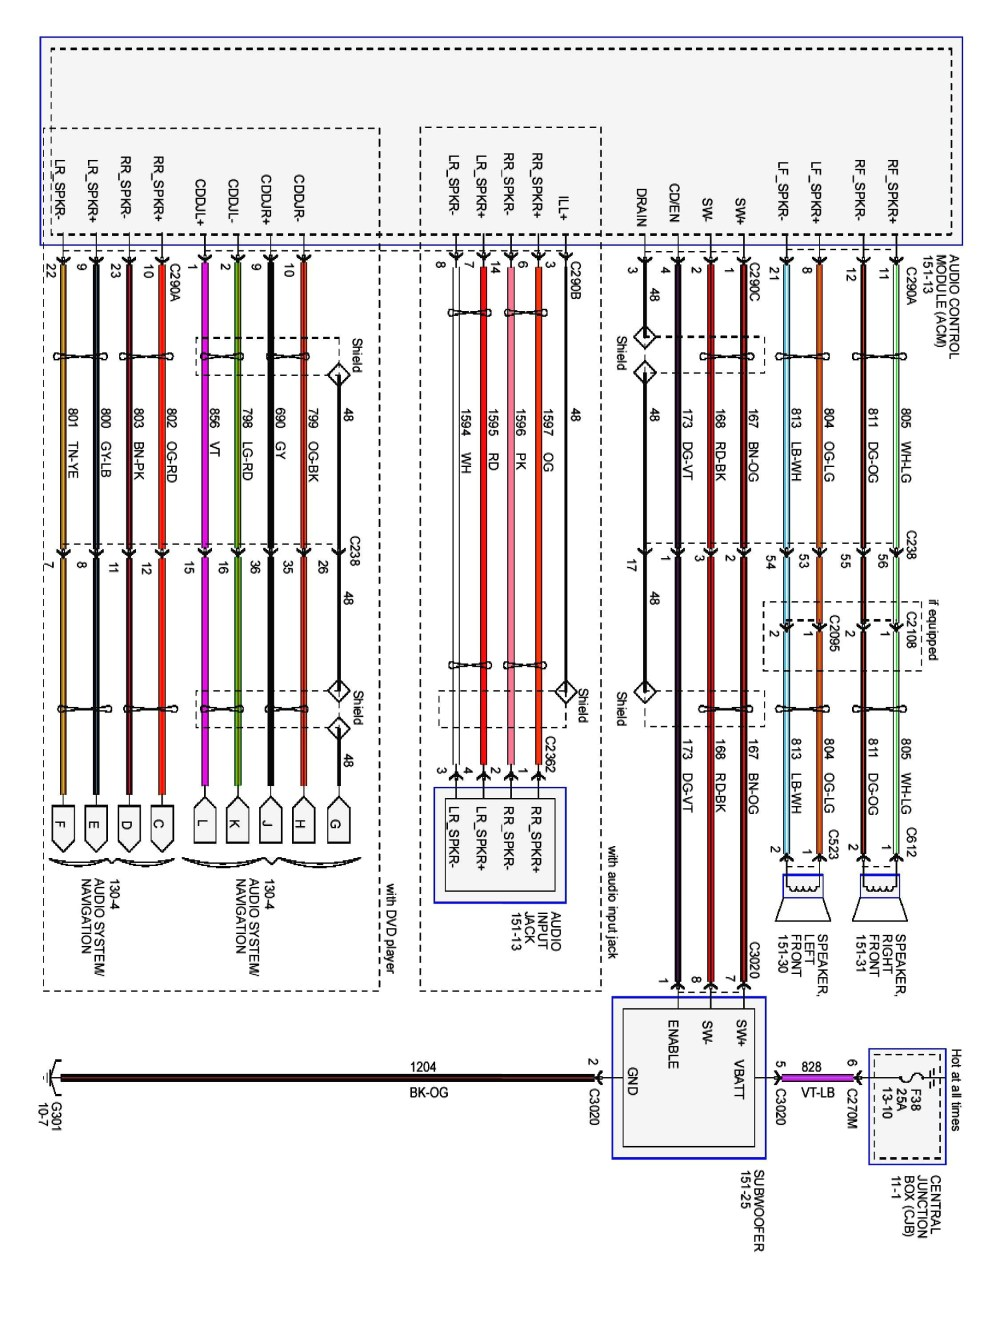 medium resolution of 04 focus wiring diagram wiring diagram centre04 focus wiring diagram